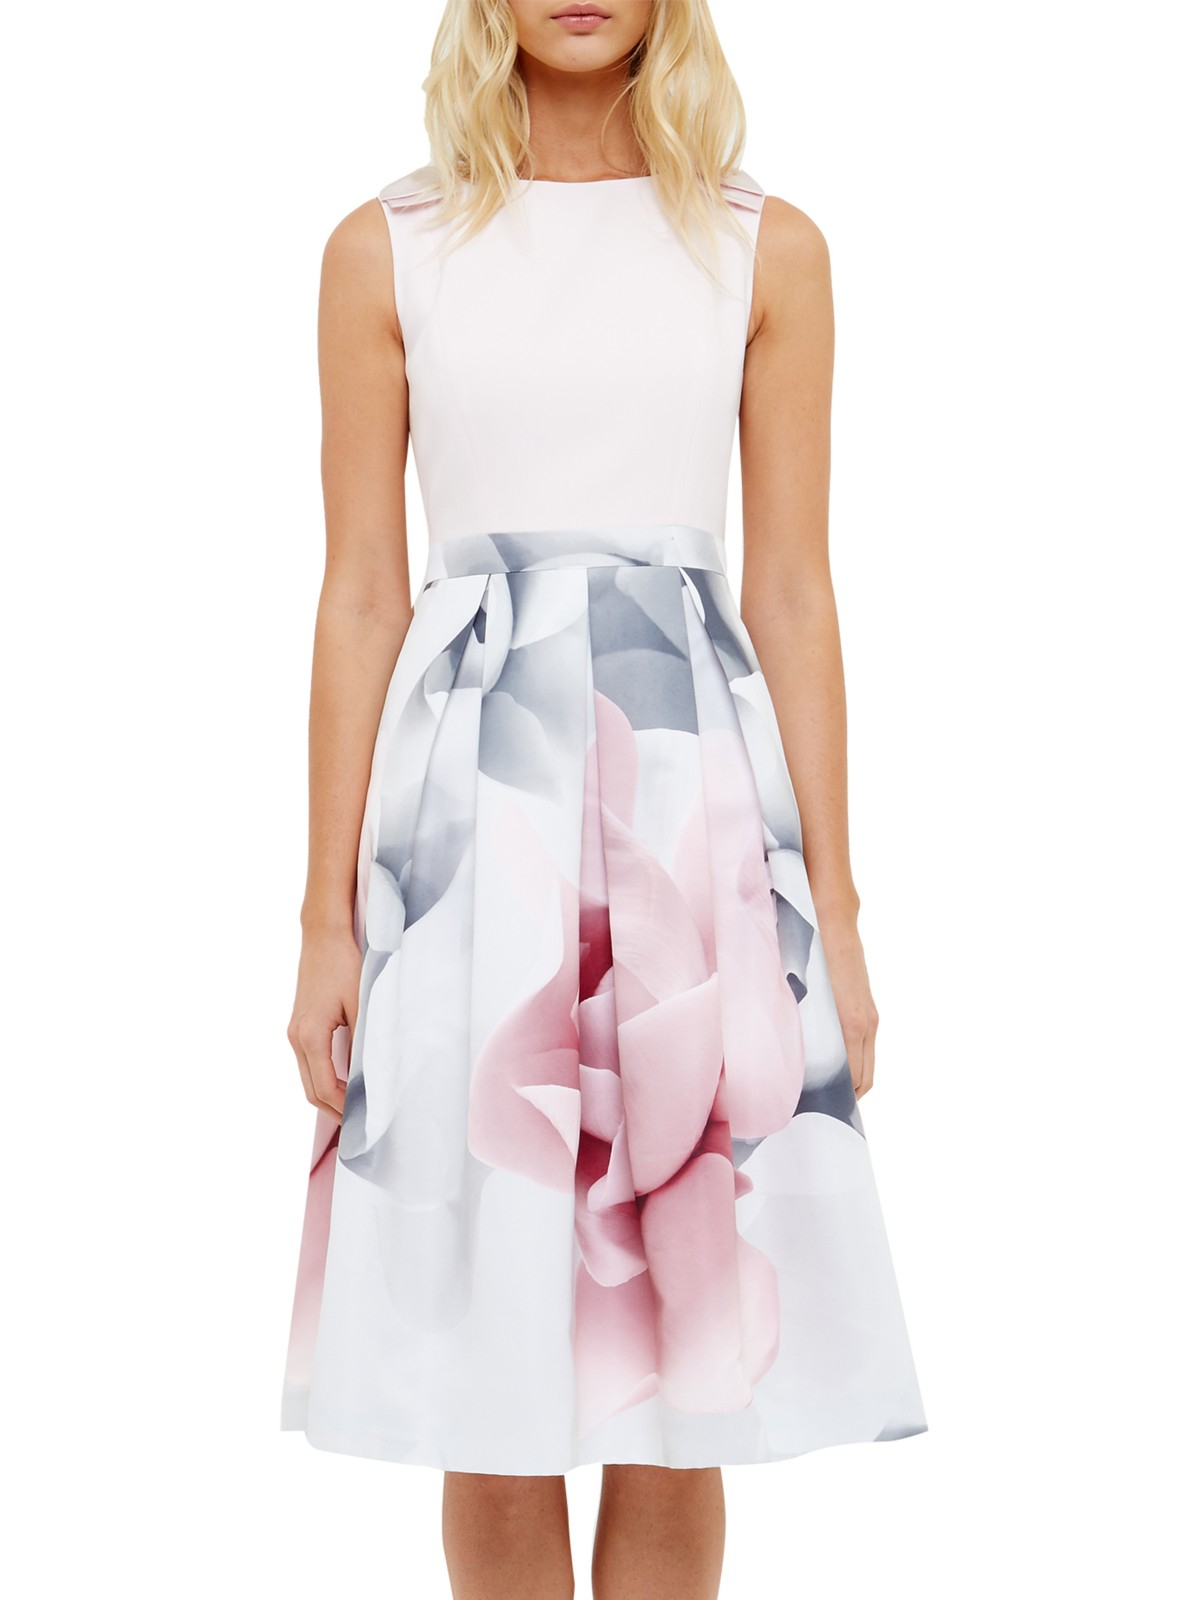 Ted Baker Riina Porcelain Rose Bow Dress In Pink Lyst Wanita Farra Gallery